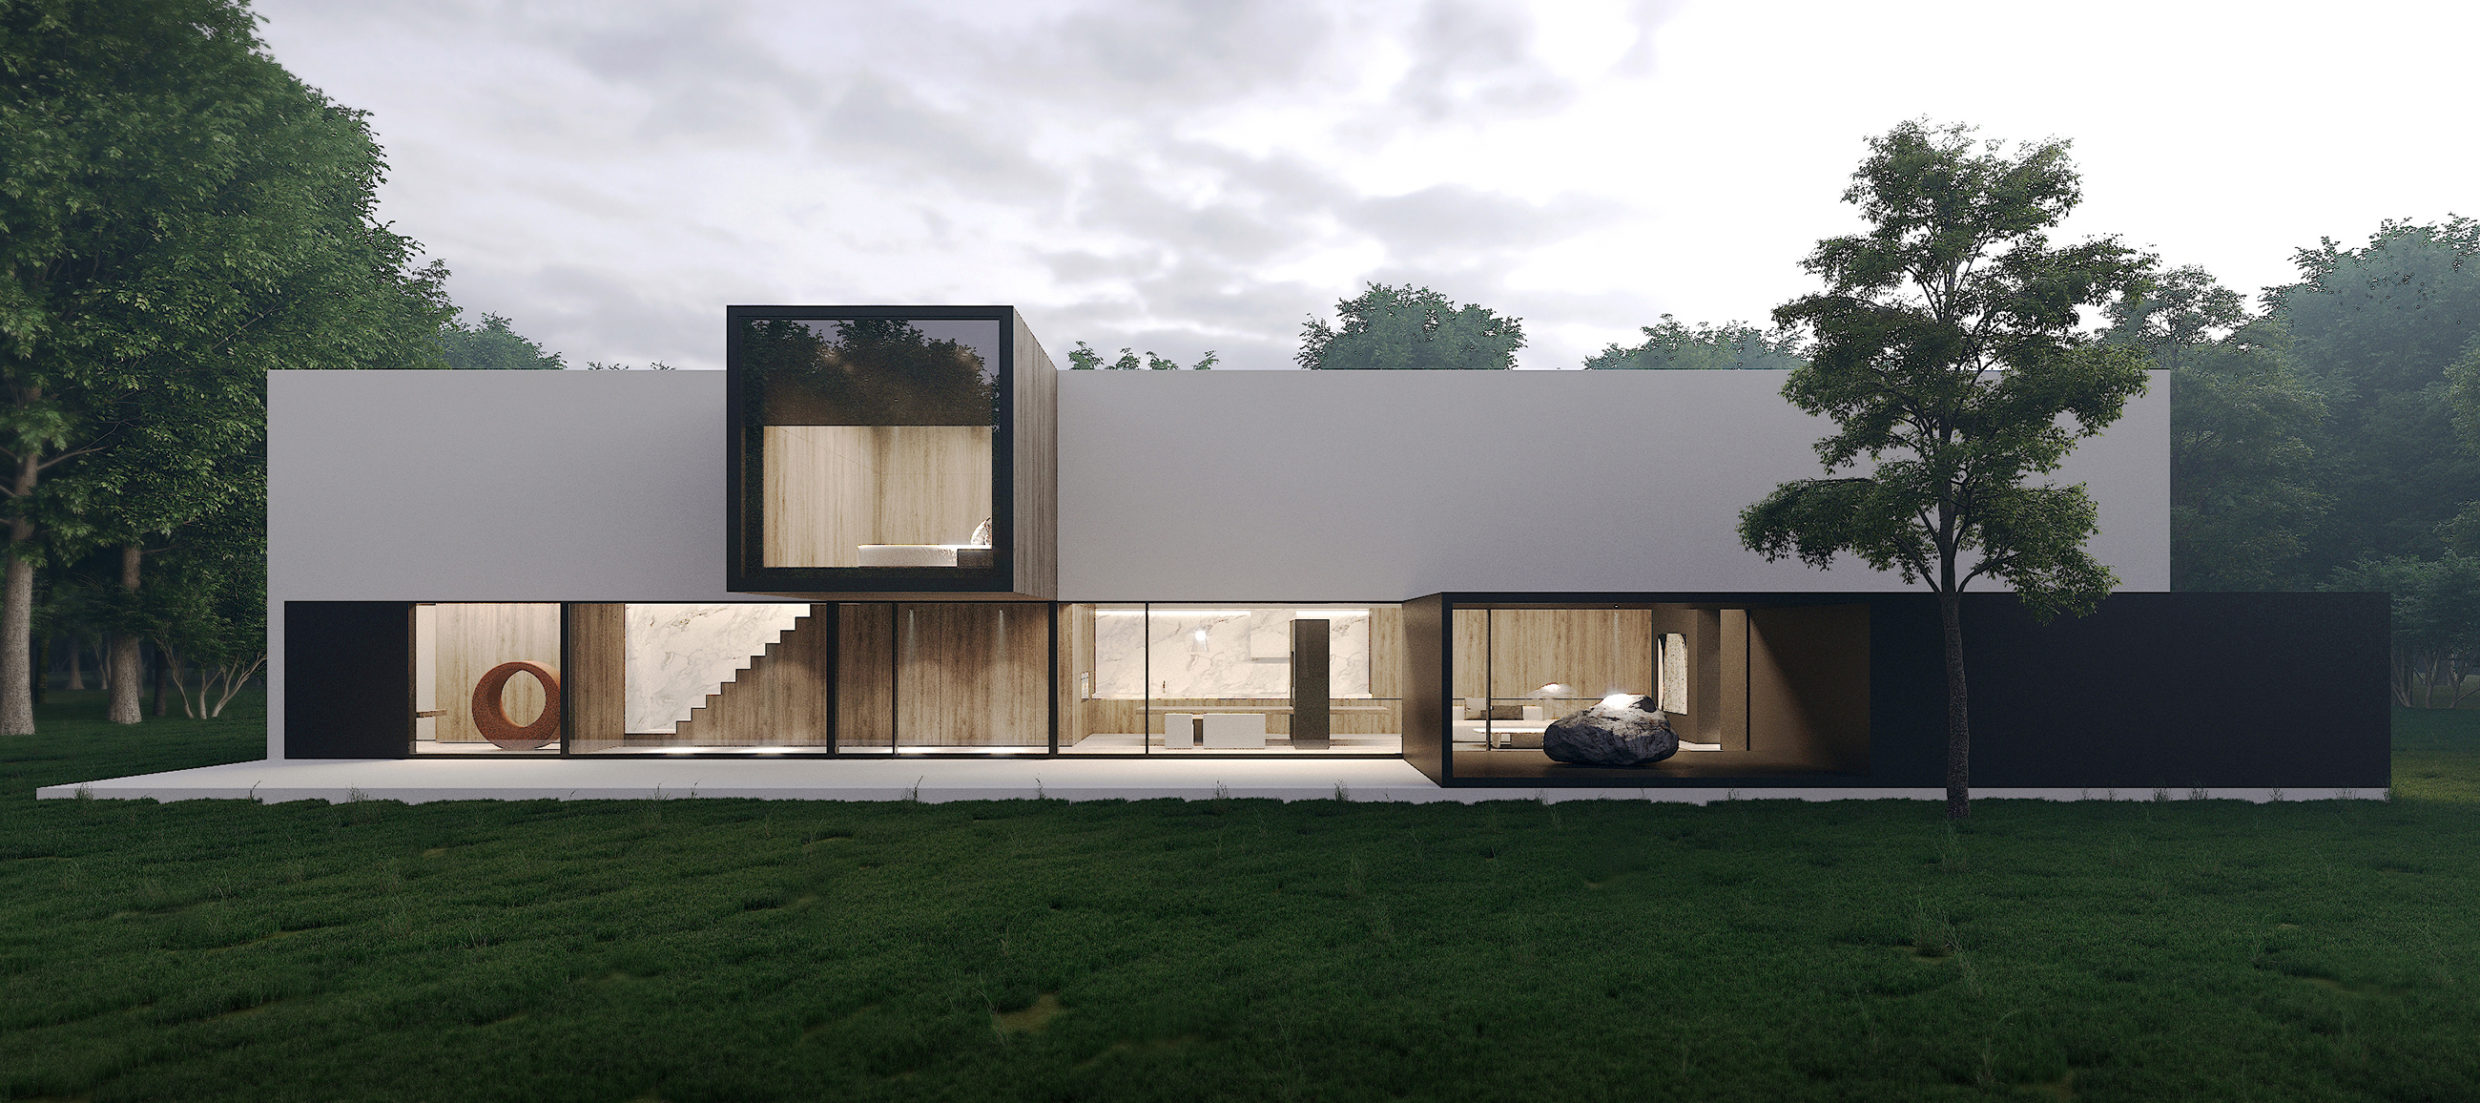 CONCEPT HOUSE lll 1